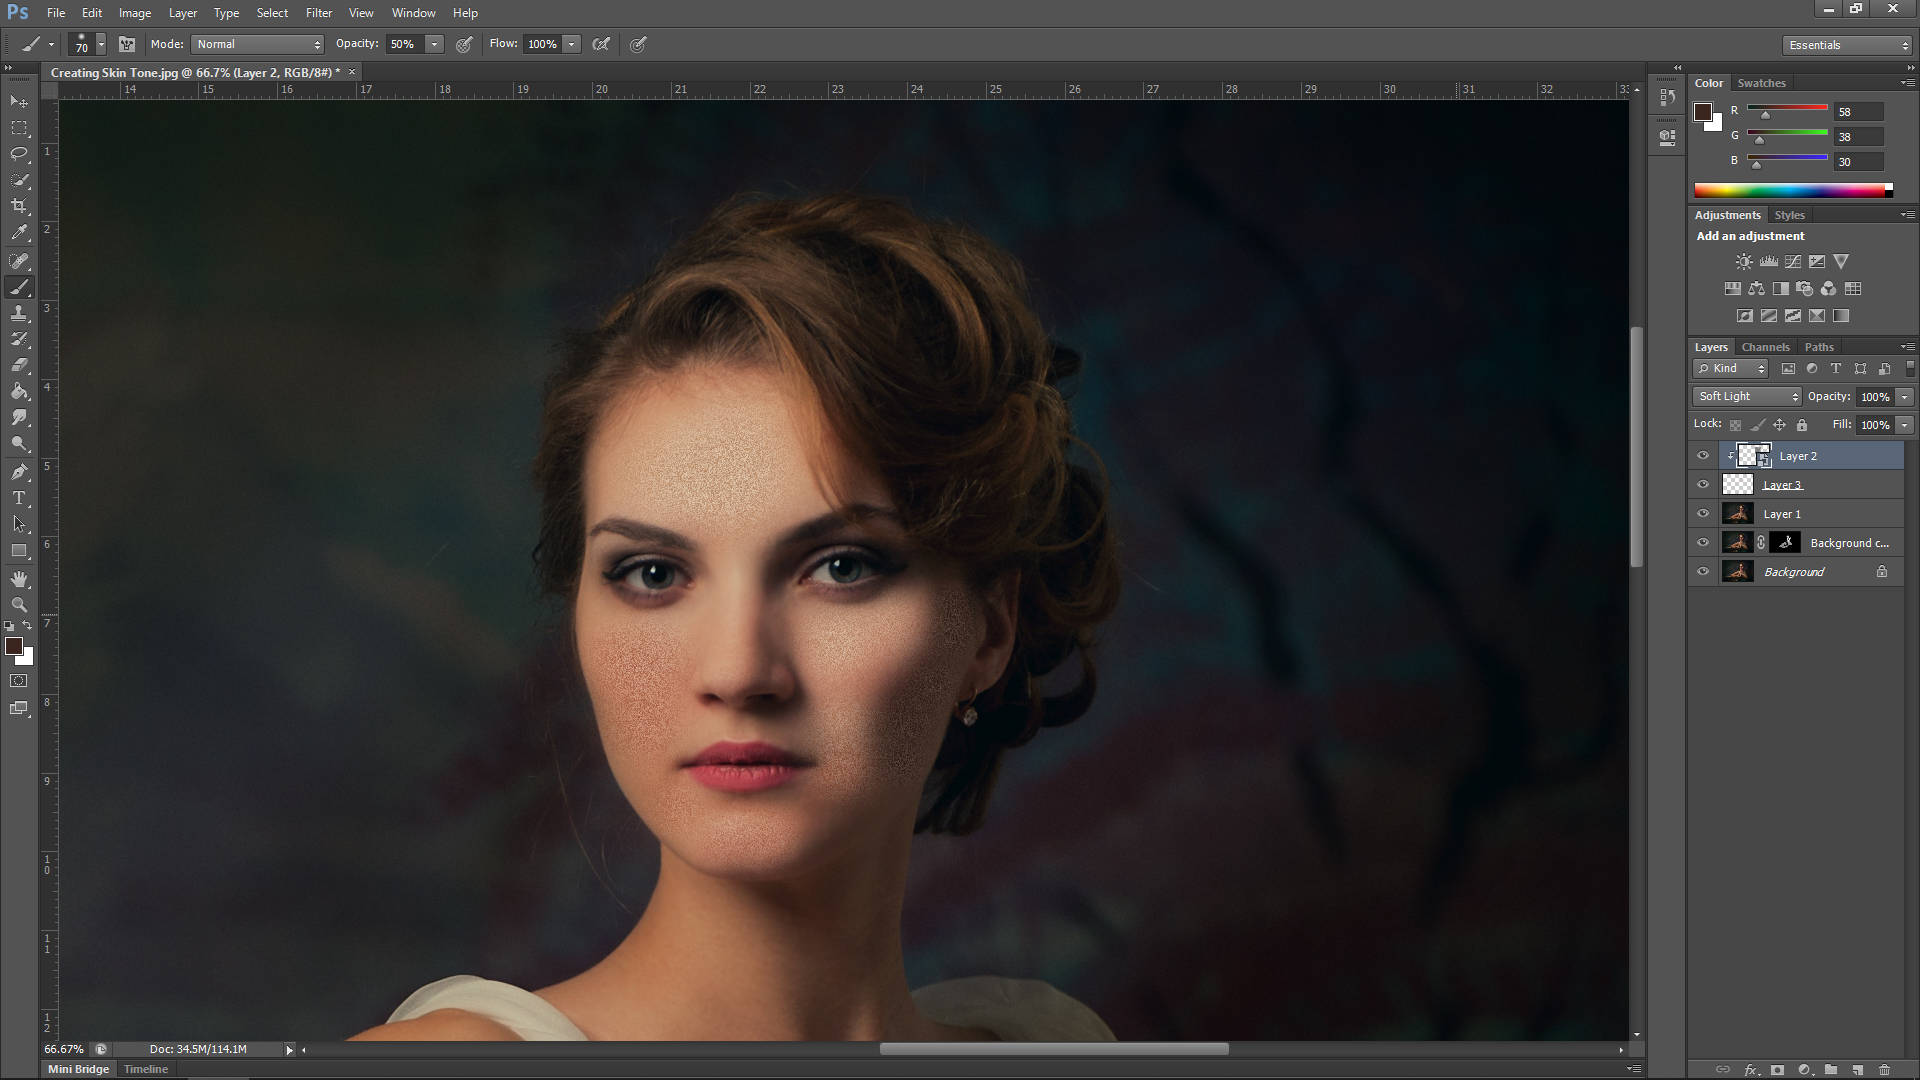 Create Skin Texture in Photoshop